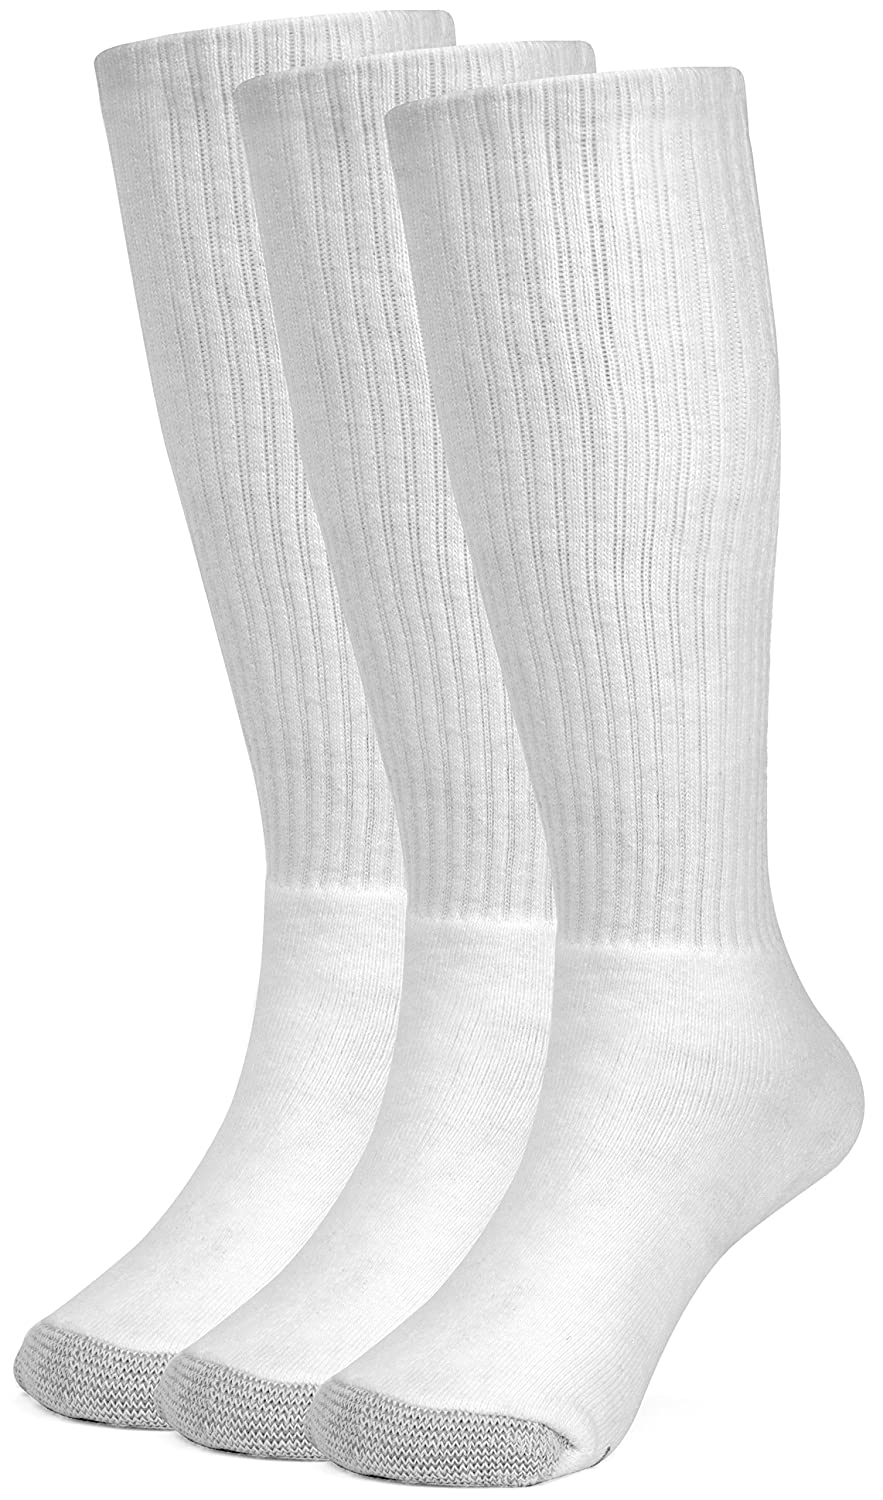 3 Pairs Galiva Girls Cotton Extra Soft Over the Calf Cushion Socks